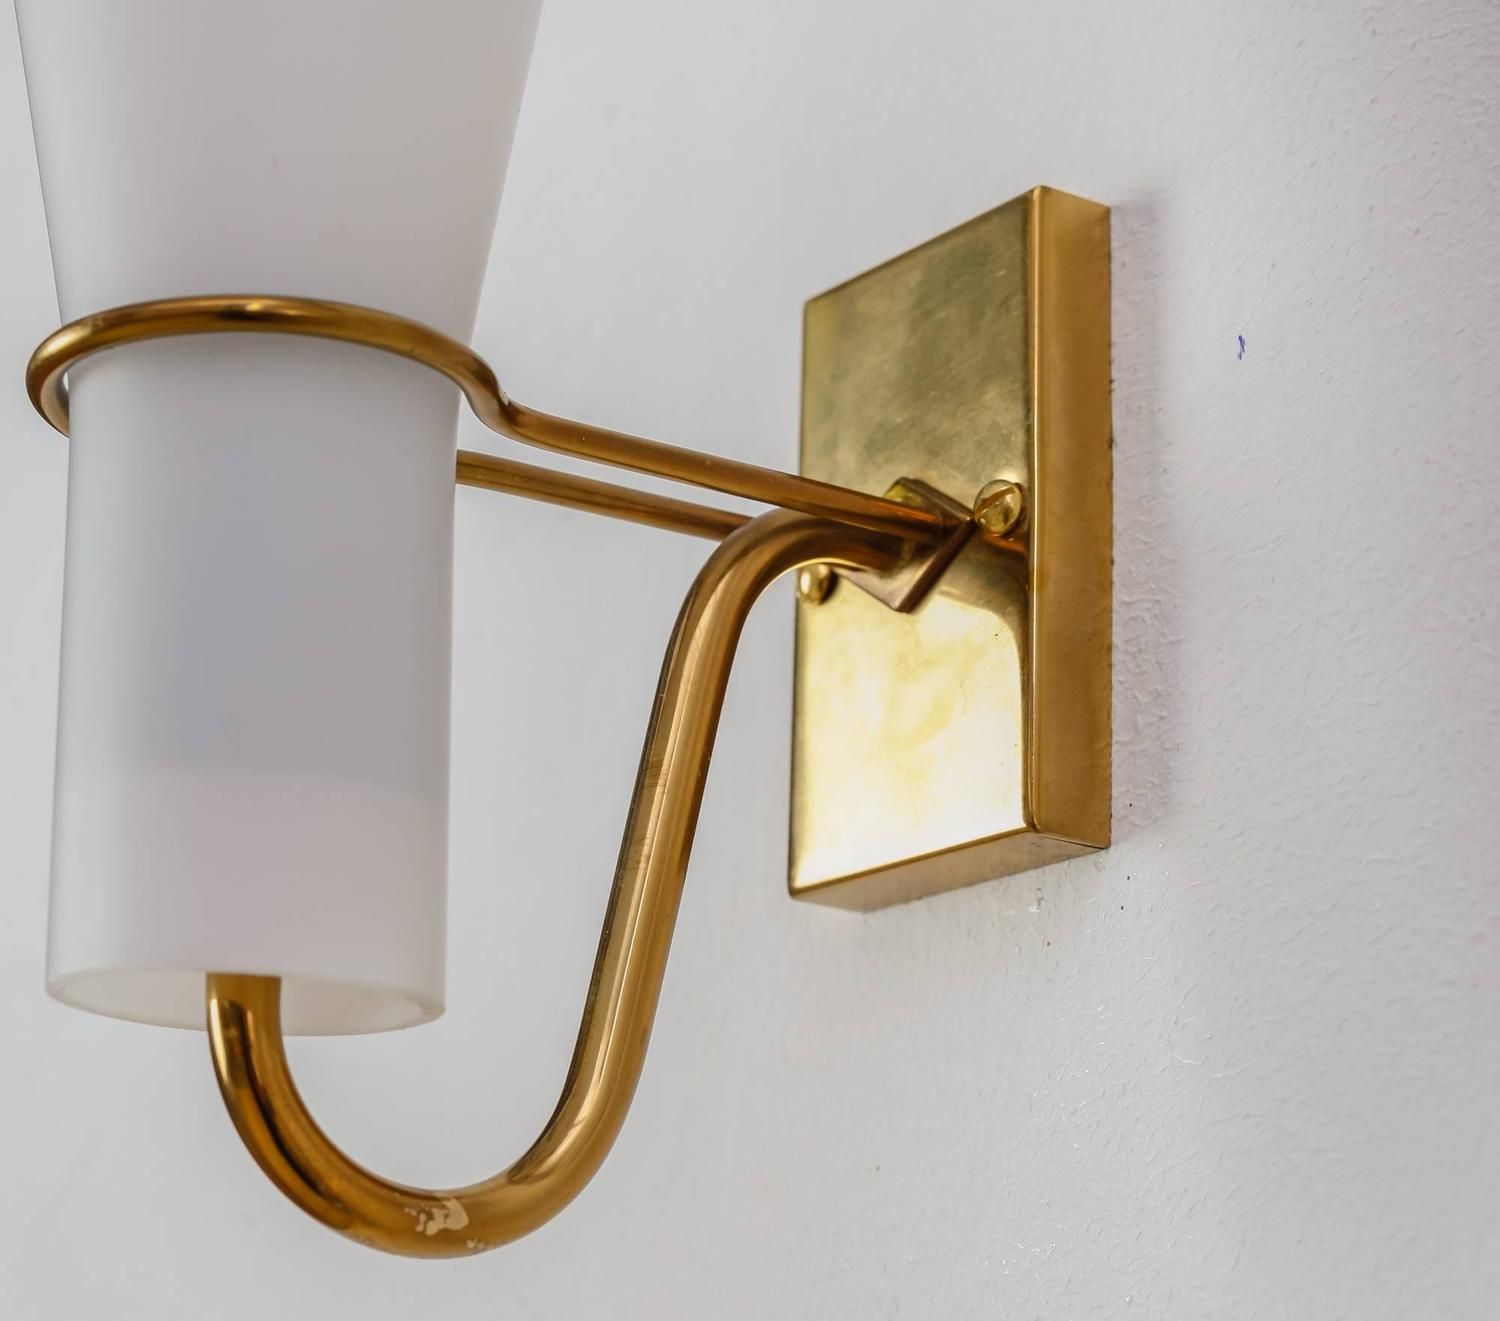 Brass Bedside Wall Lights : Asea brass and opaline glass bedside wall lamps, Sweden, 1950s For Sale at 1stdibs